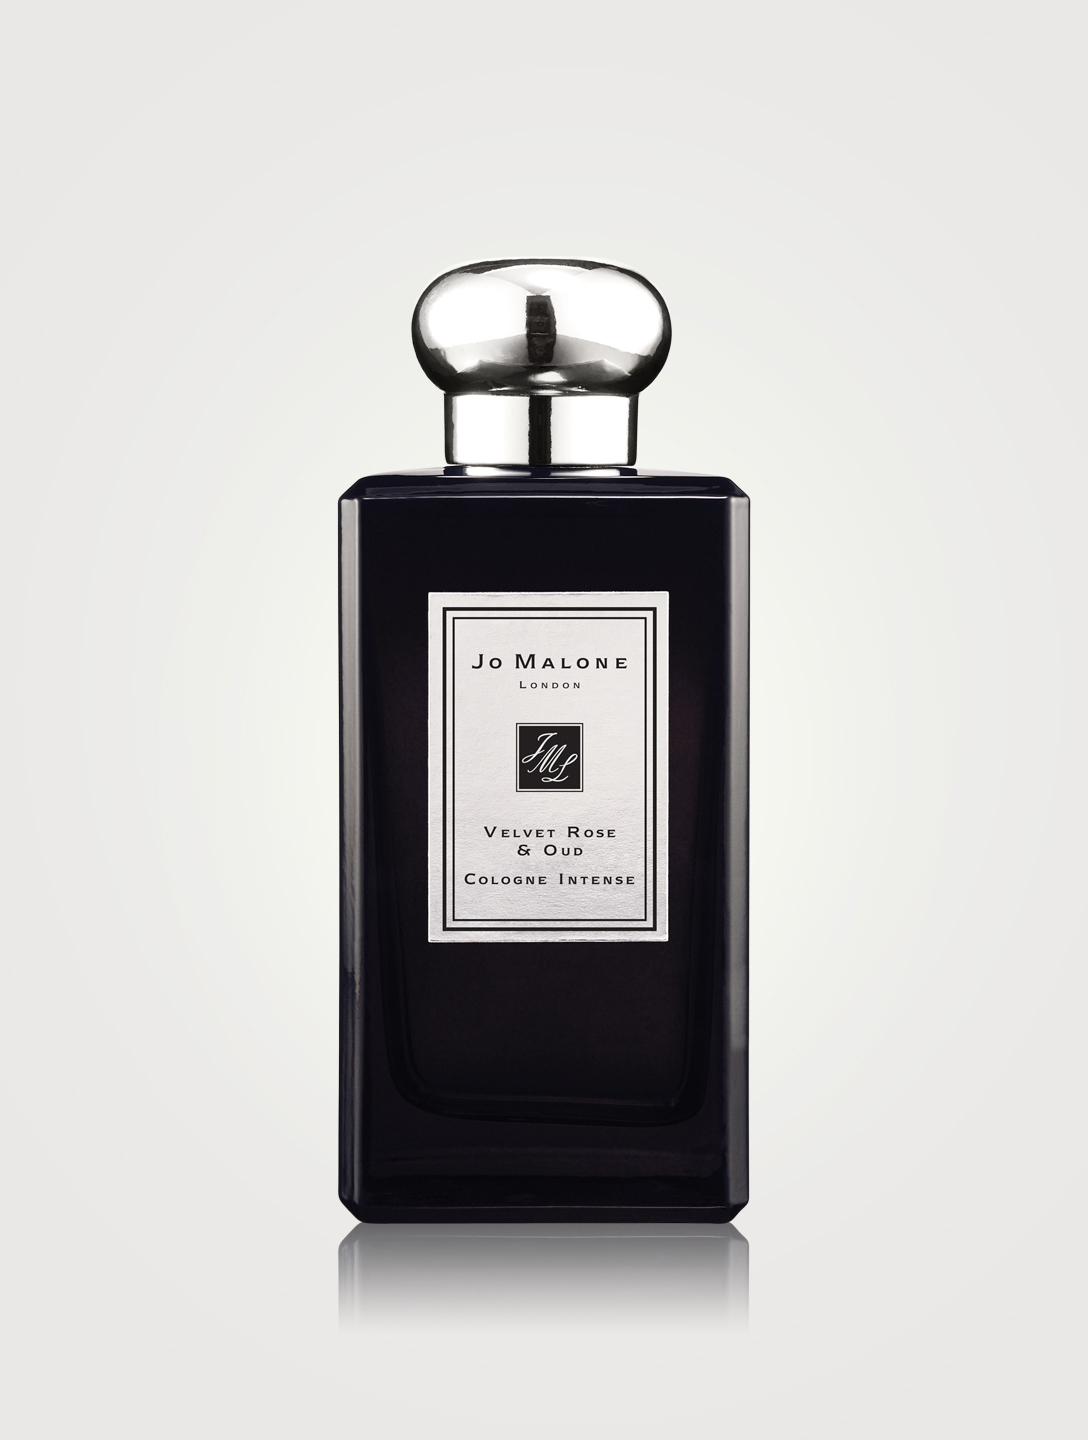 JO MALONE LONDON Velvet Rose & Oud Cologne Intense Beauty